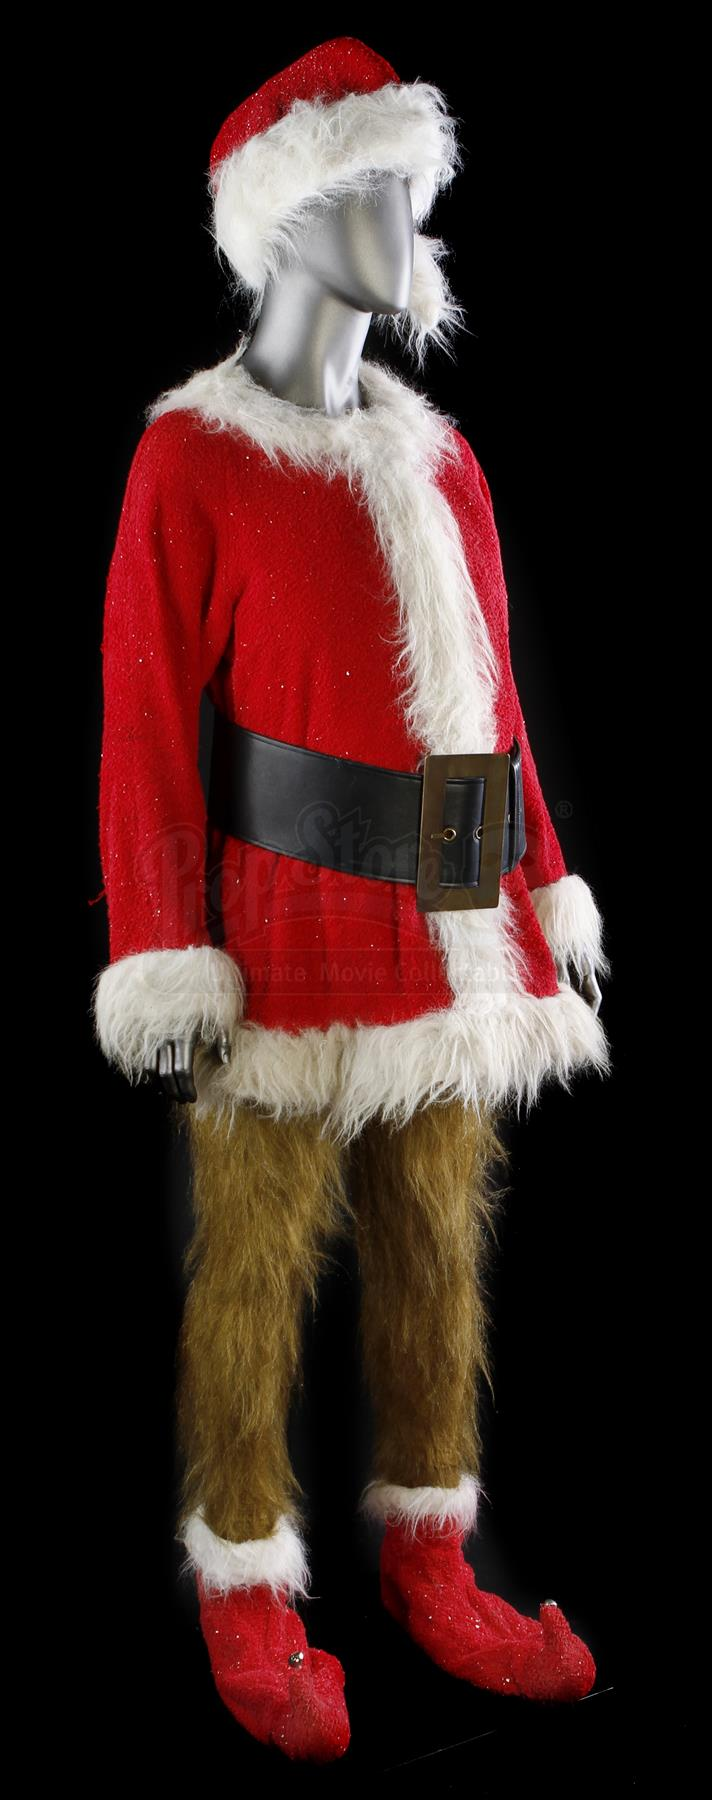 Lot # 265. Grinch Stunt Santa Costume ... & HOW THE GRINCH STOLE CHRISTMAS (2000) - Grinch Stunt Santa Costume ...